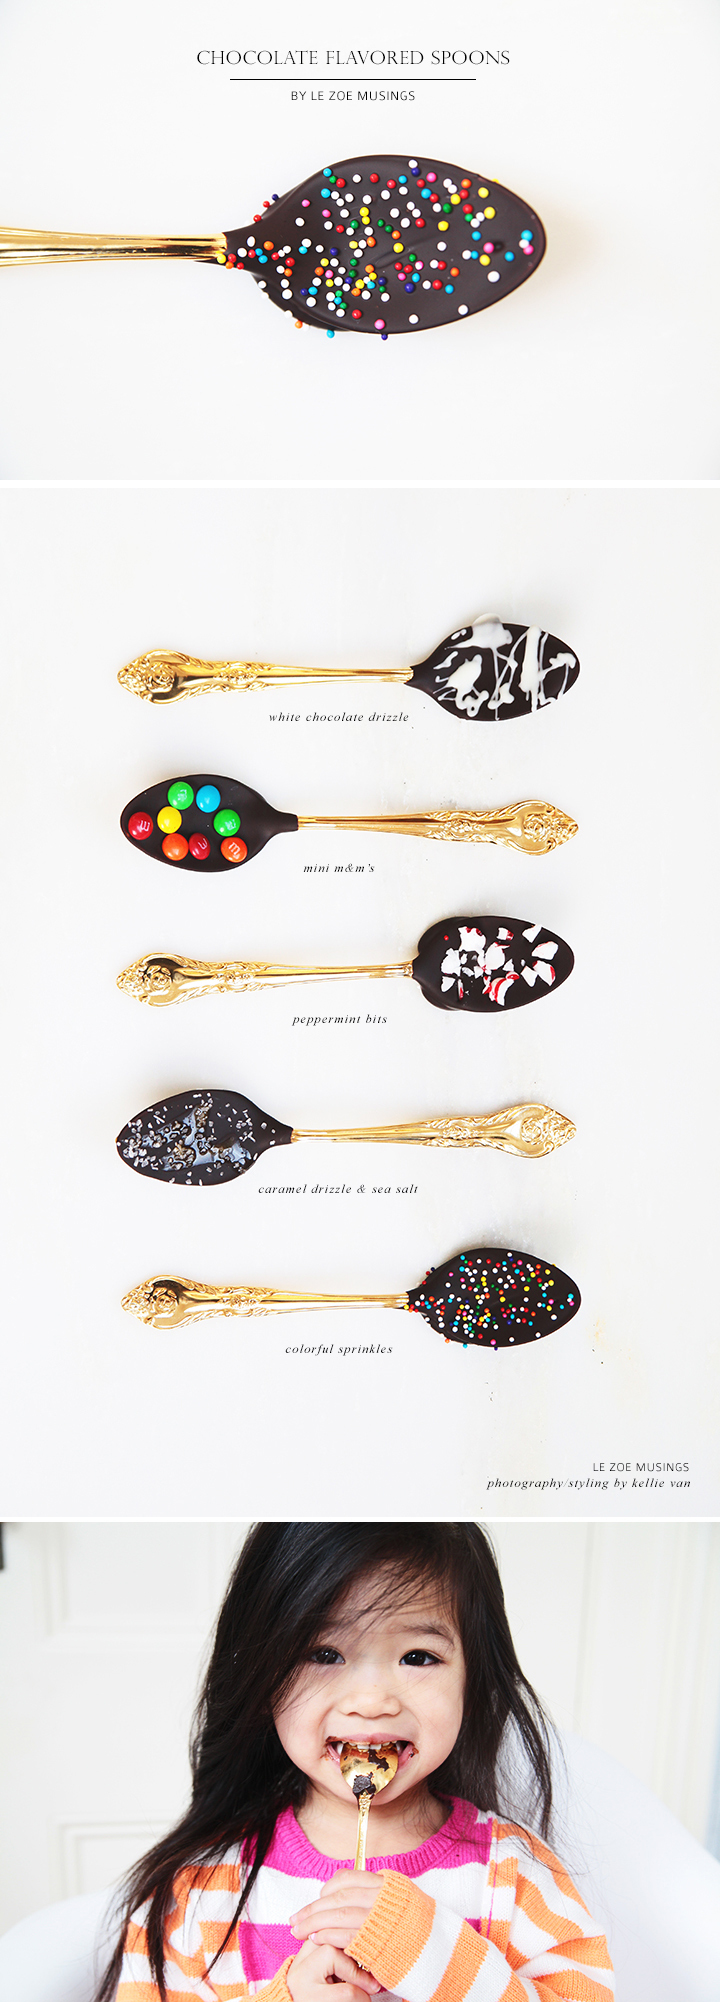 chocolate-flavored-spoon-by-le-zoe-musings_2 (1)